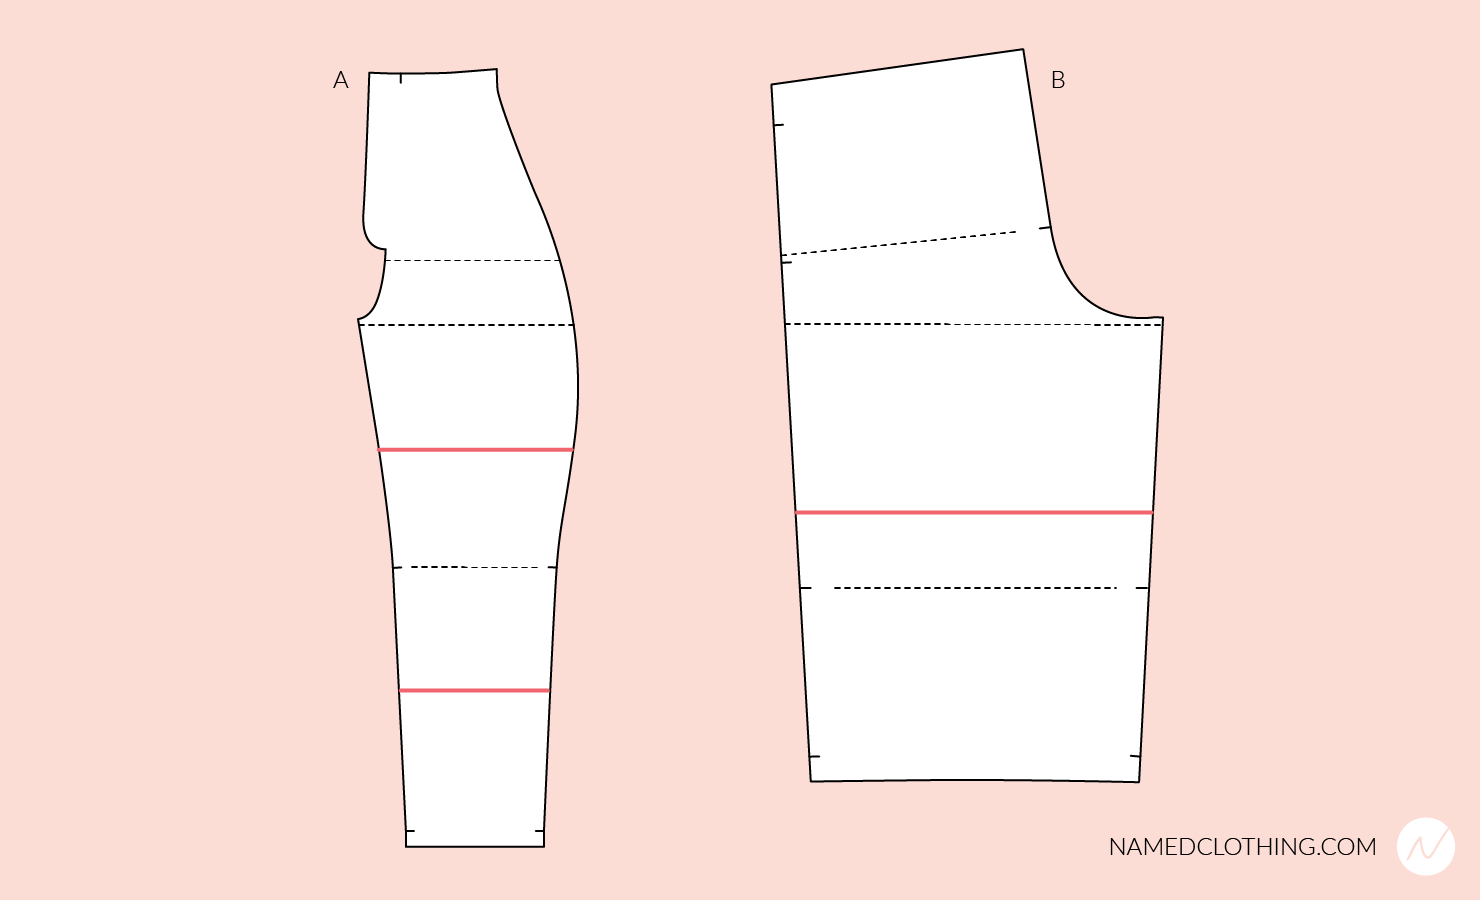 Altering the inseam length of the pattern